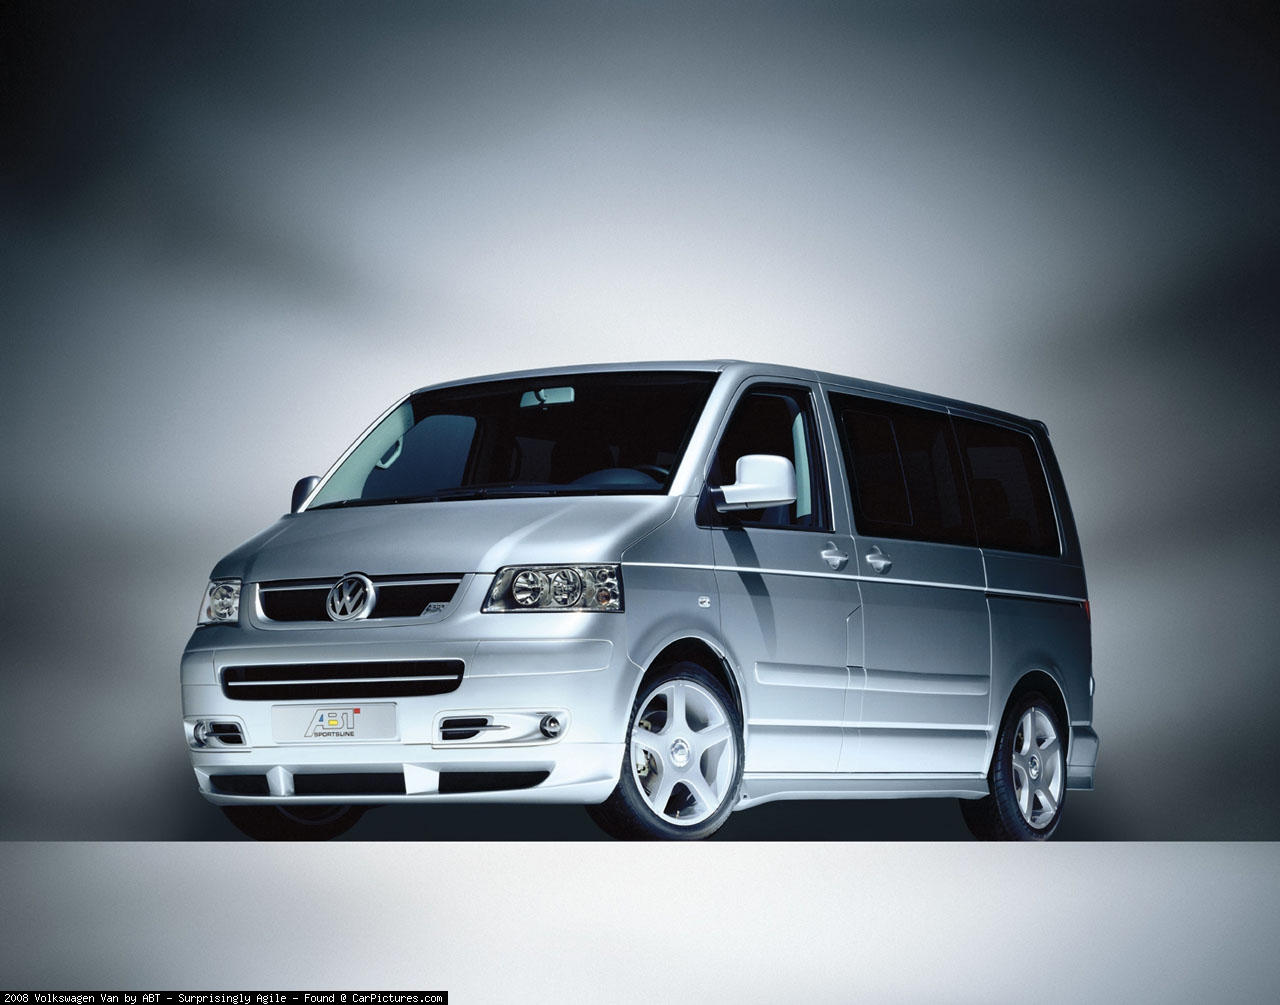 ABT Volkswagen Van photo 48156